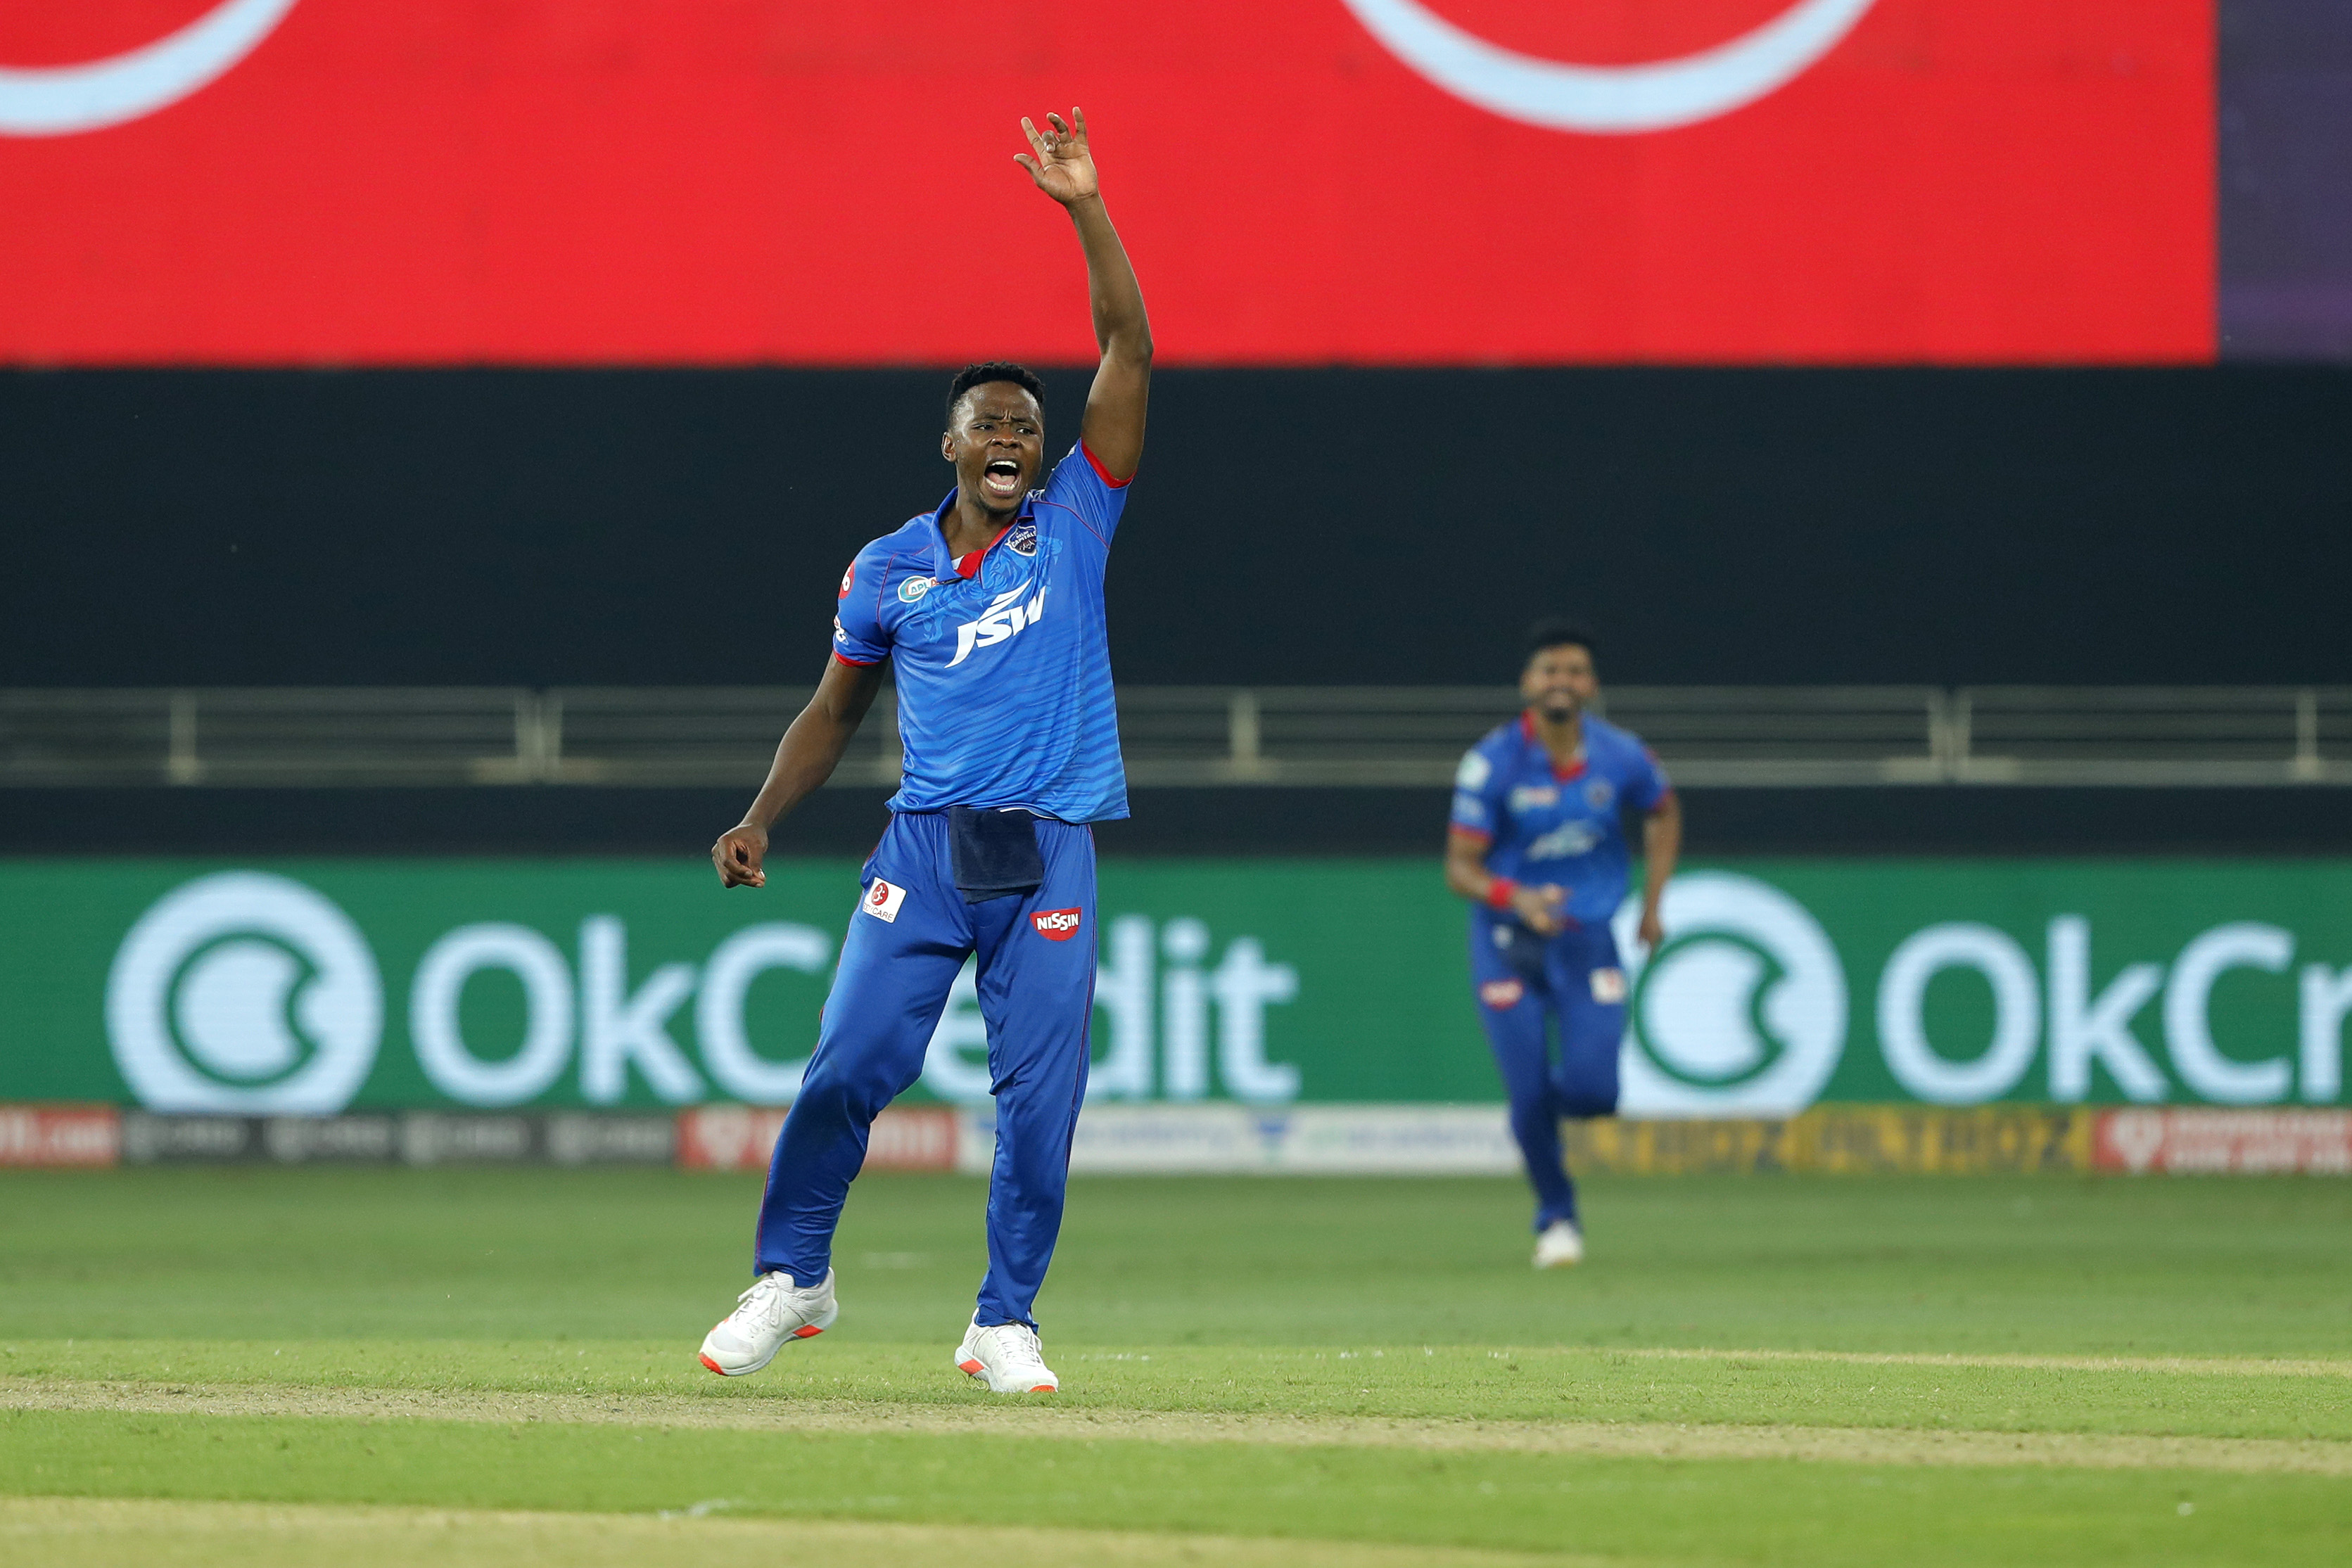 Delhi Beat Punjab In Super Over After Thrilling Match Ends In Tie - newsdezire